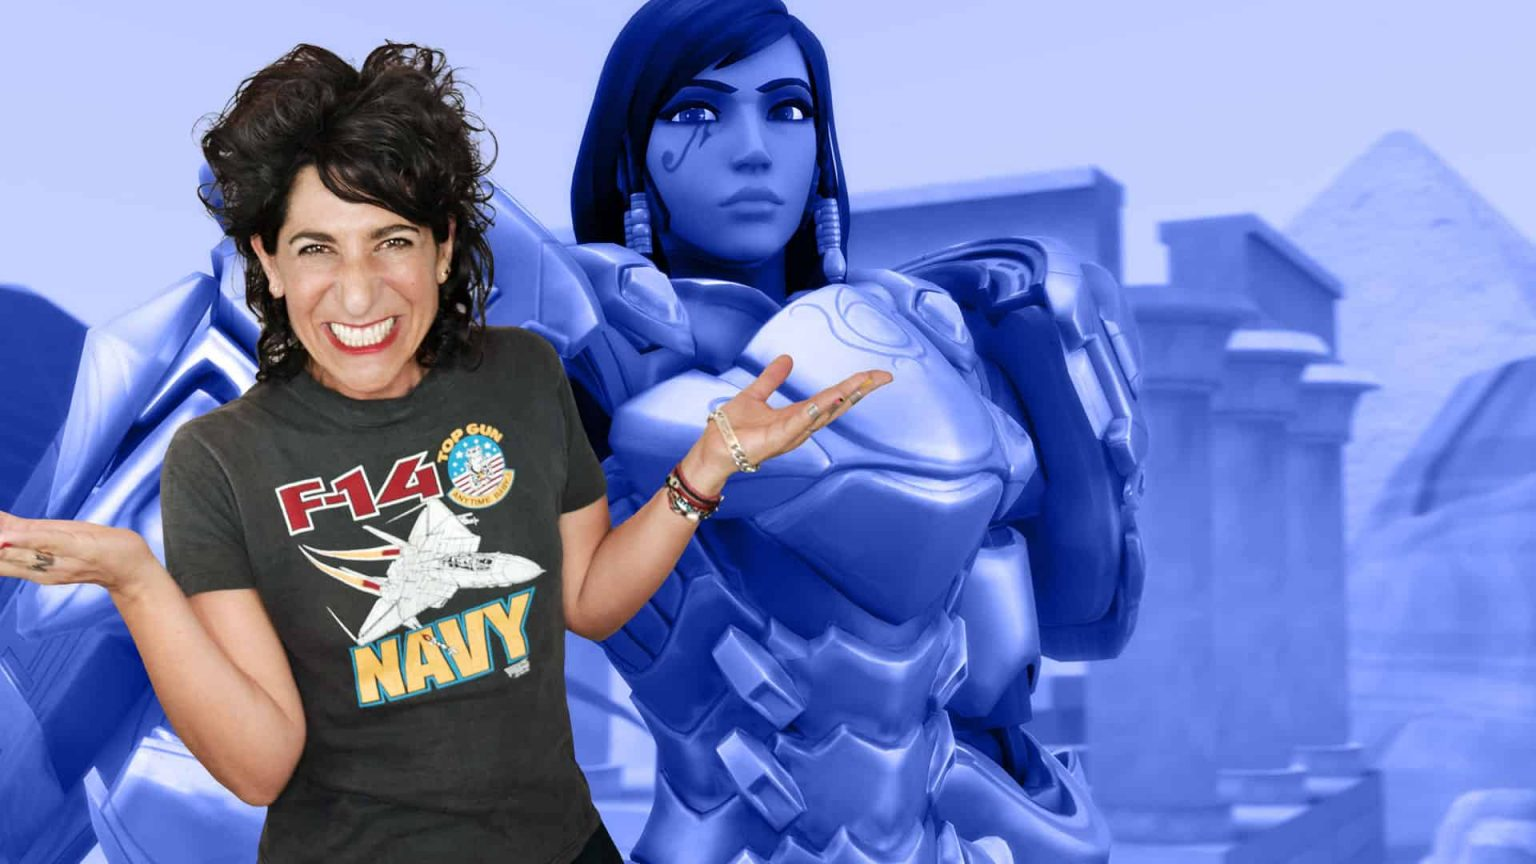 Justice Rains From Above: An Interview with Overwatch Voice Actress Jen Cohn